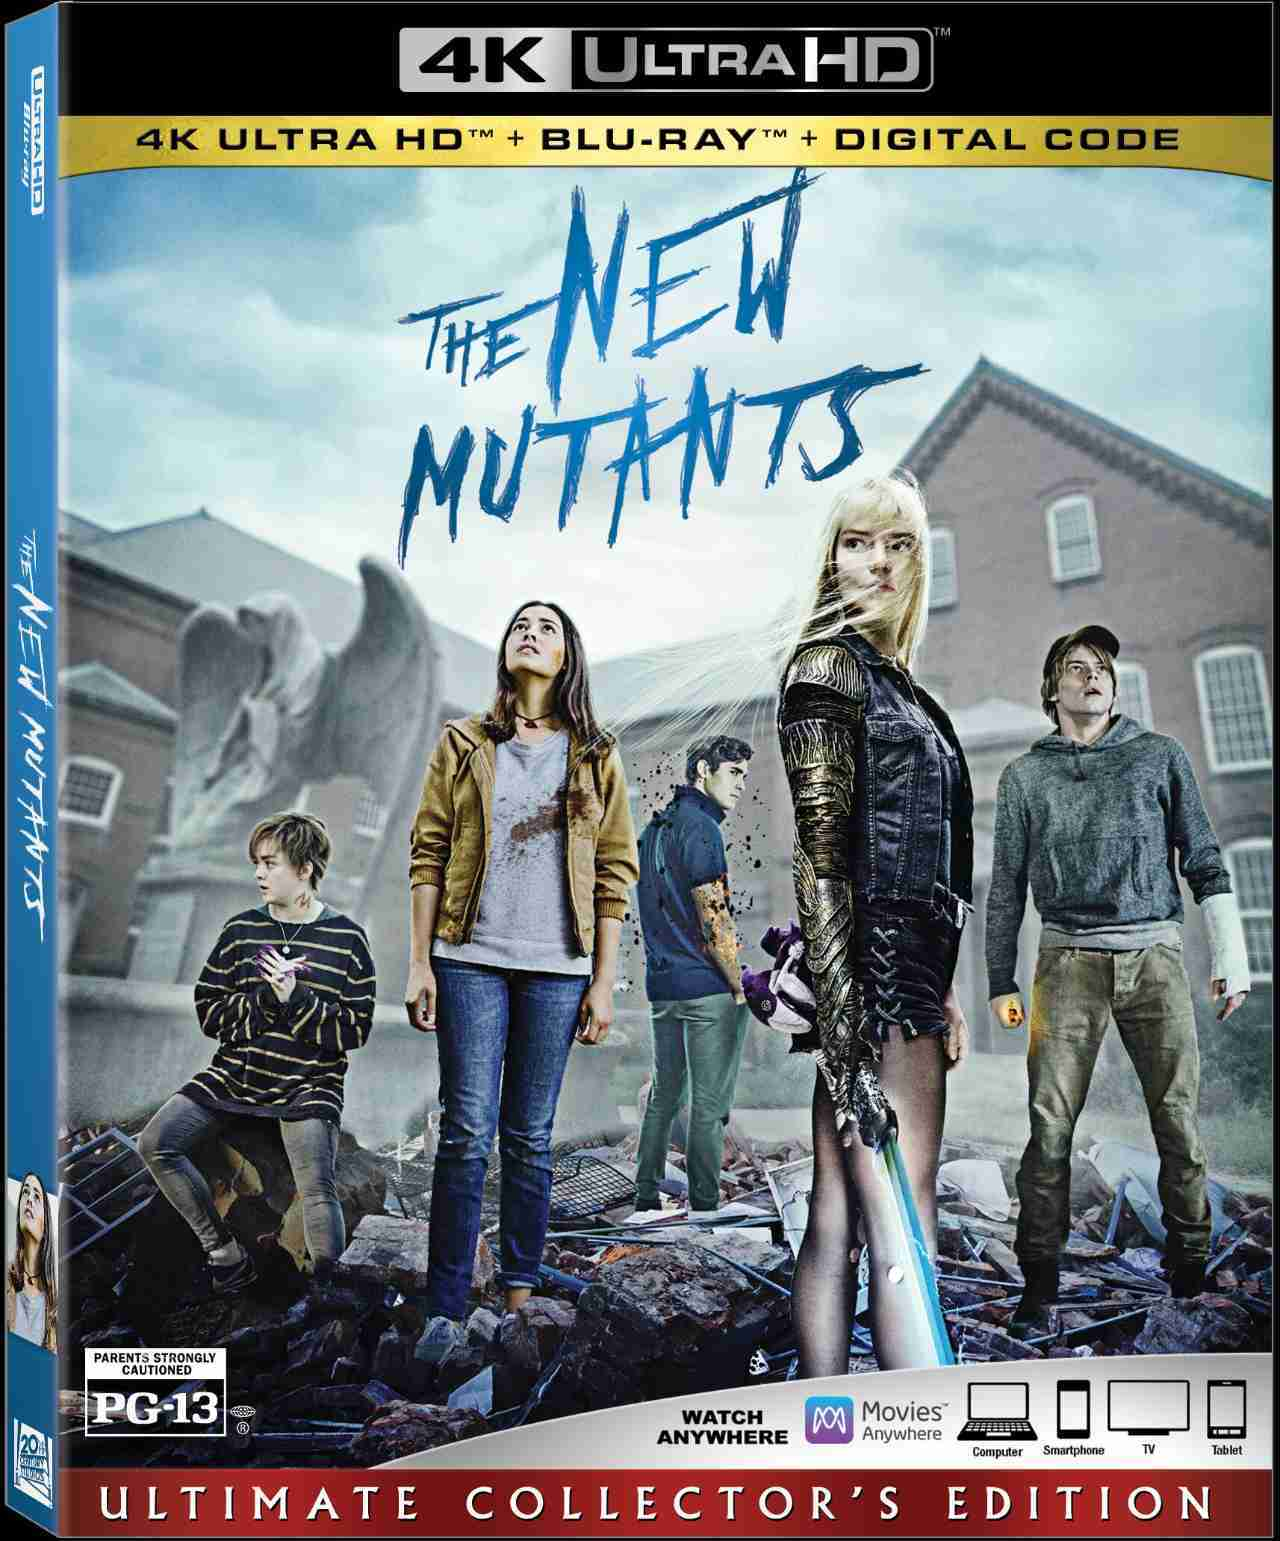 new-mutants-movie-blu-ray-1239821.jpeg?a